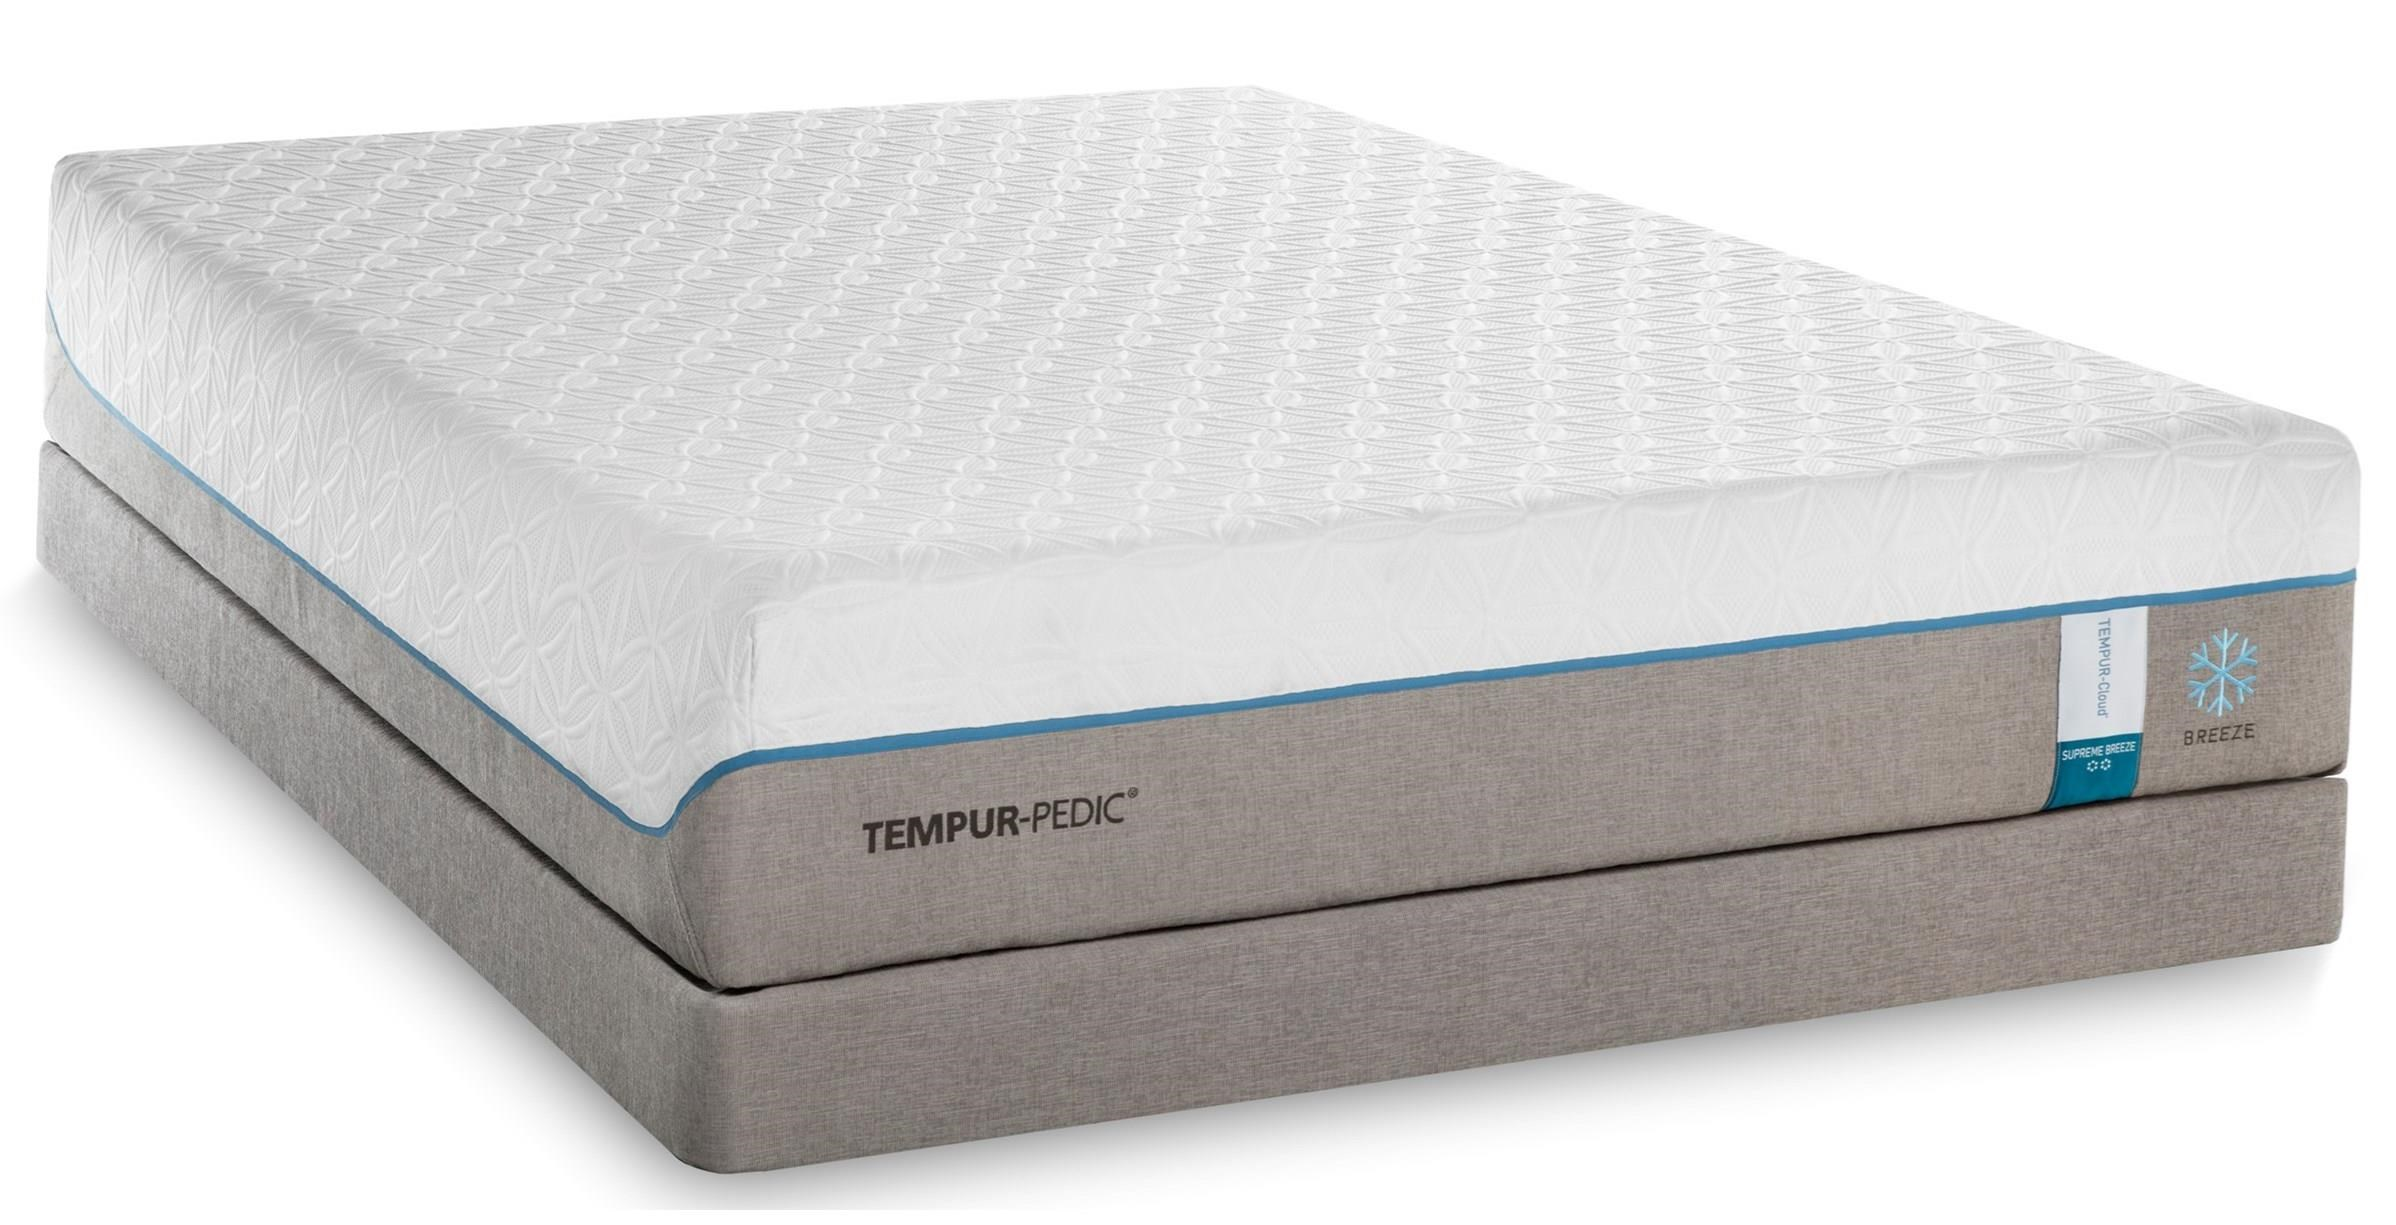 Tempur-Pedic® TEMPUR-Cloud Supreme Breeze 2 King Soft Mattress Set - Item Number: 10103270+2x20510120